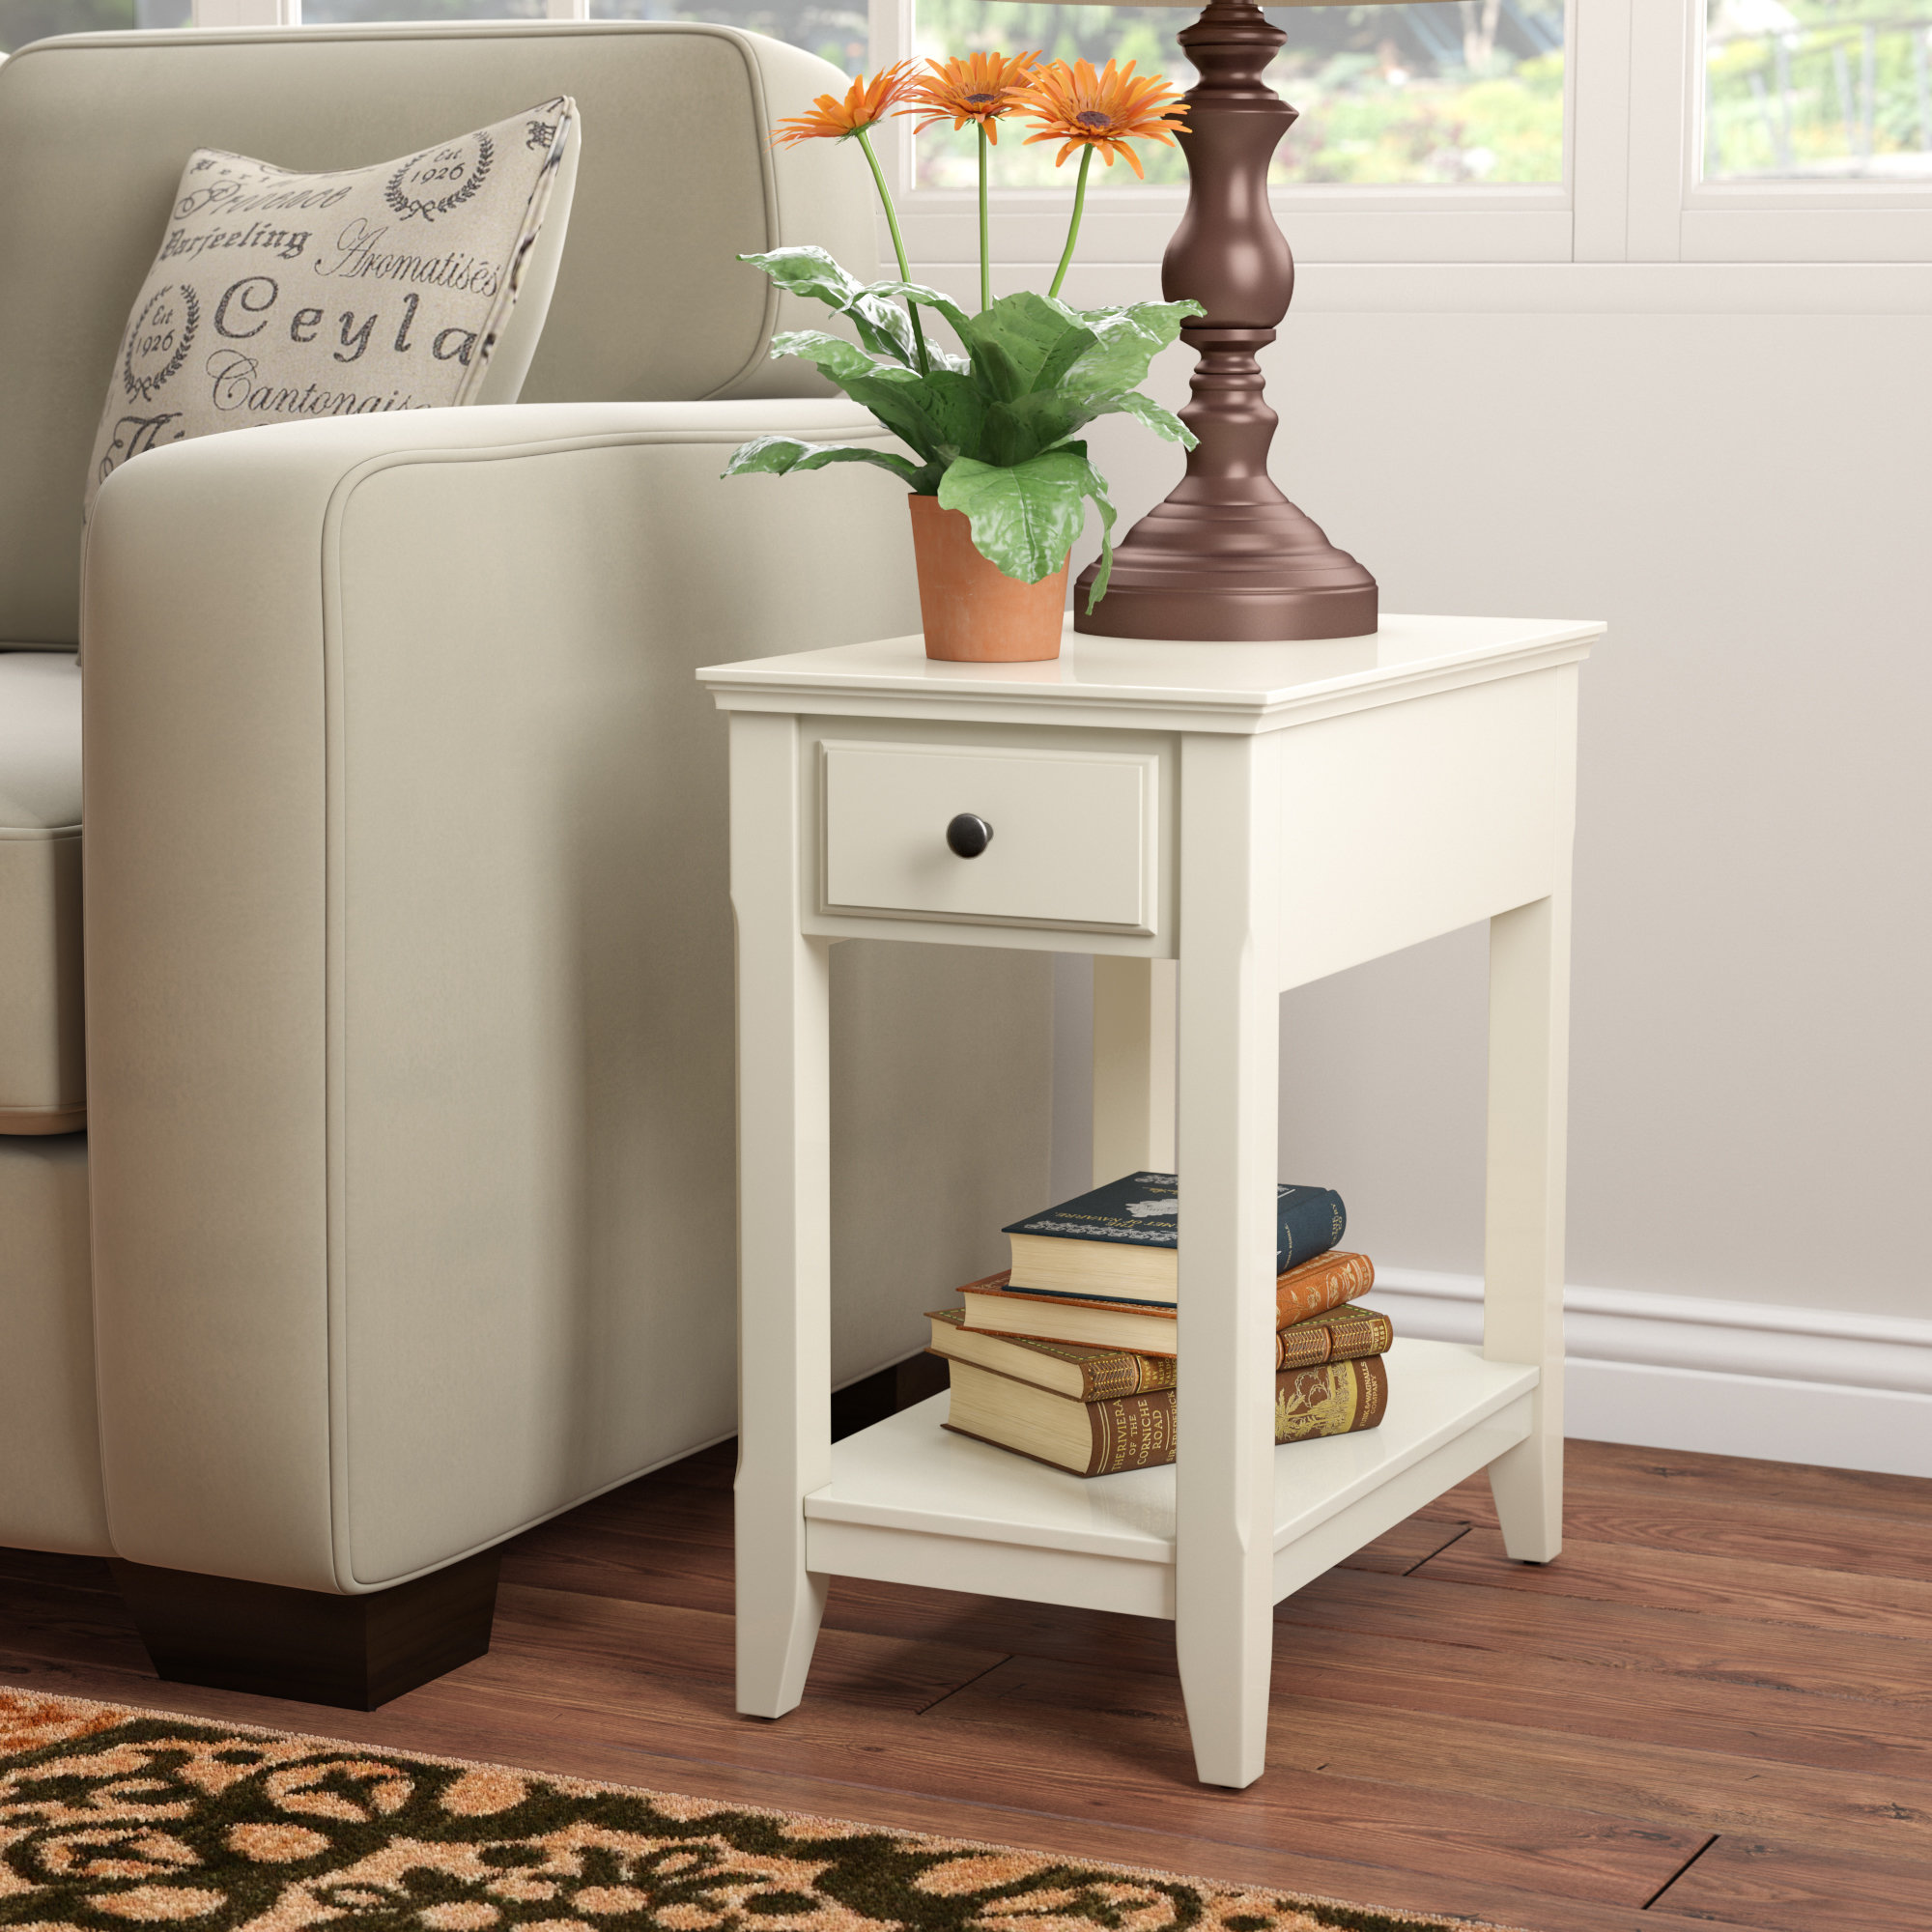 small low side table hillyard end with storage white accent for nursery quickview target metal futon natural wood dining cordless lamps living room pottery barn ott patio box